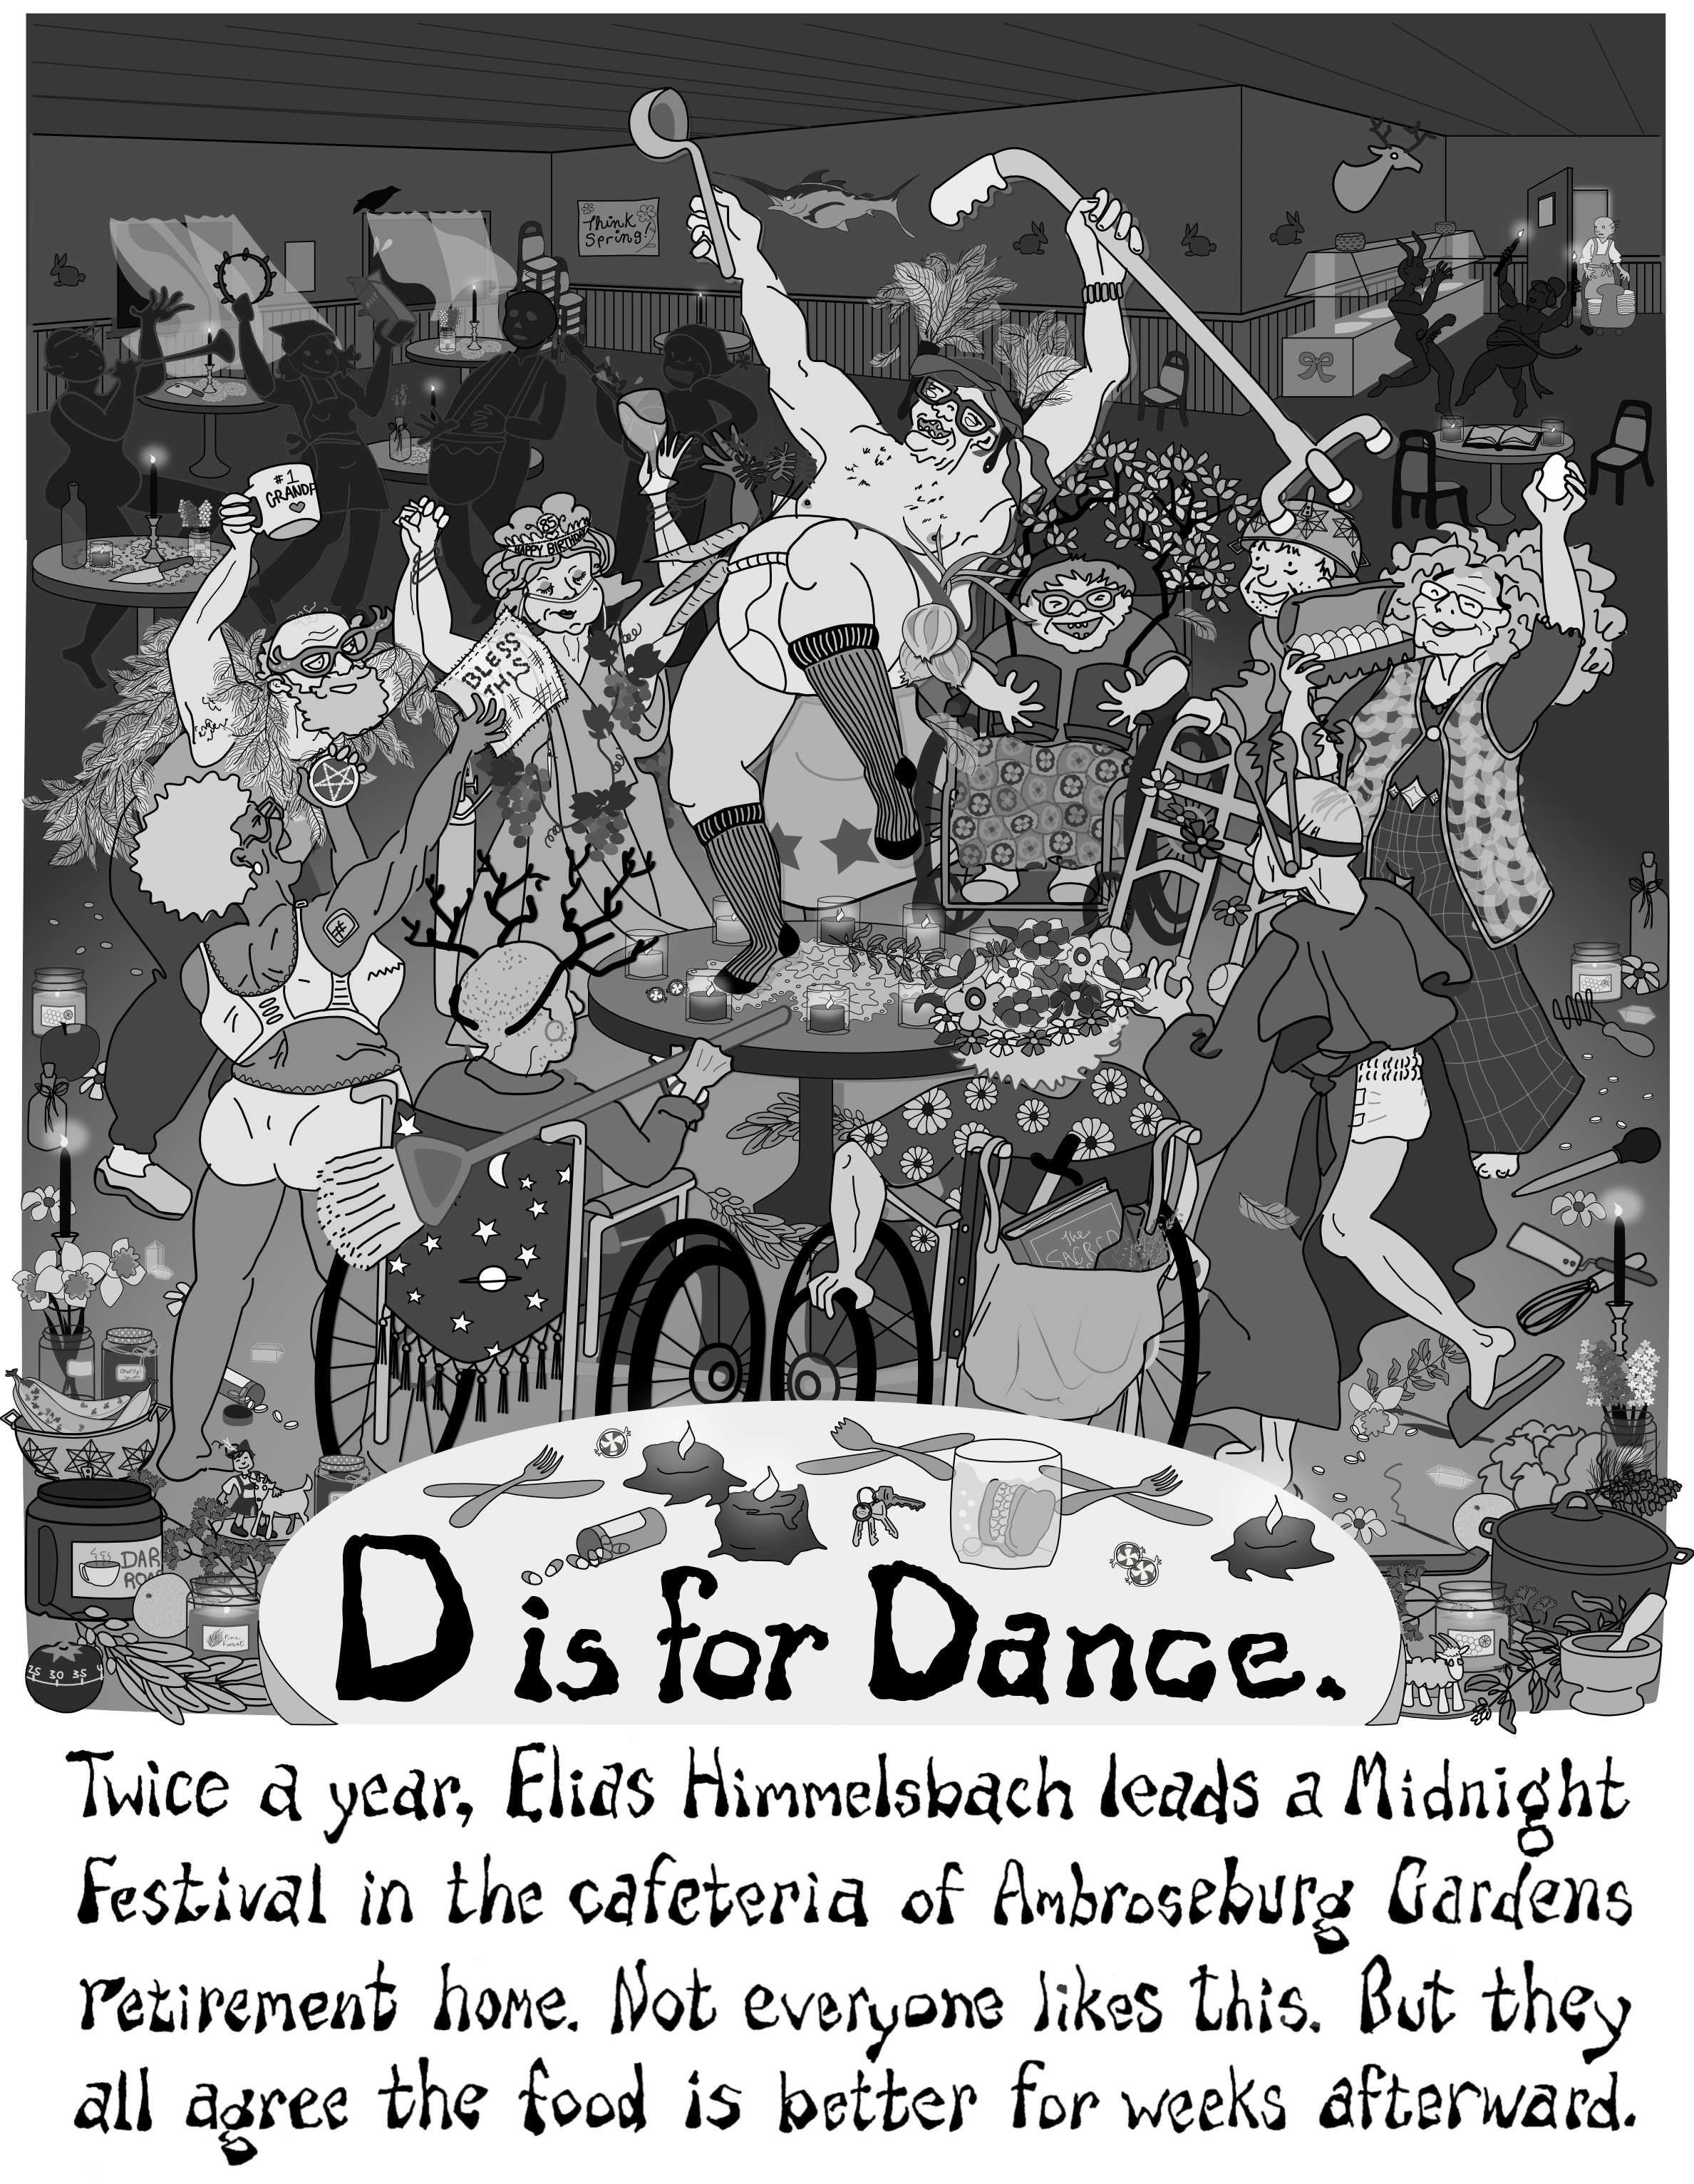 D is for Dance